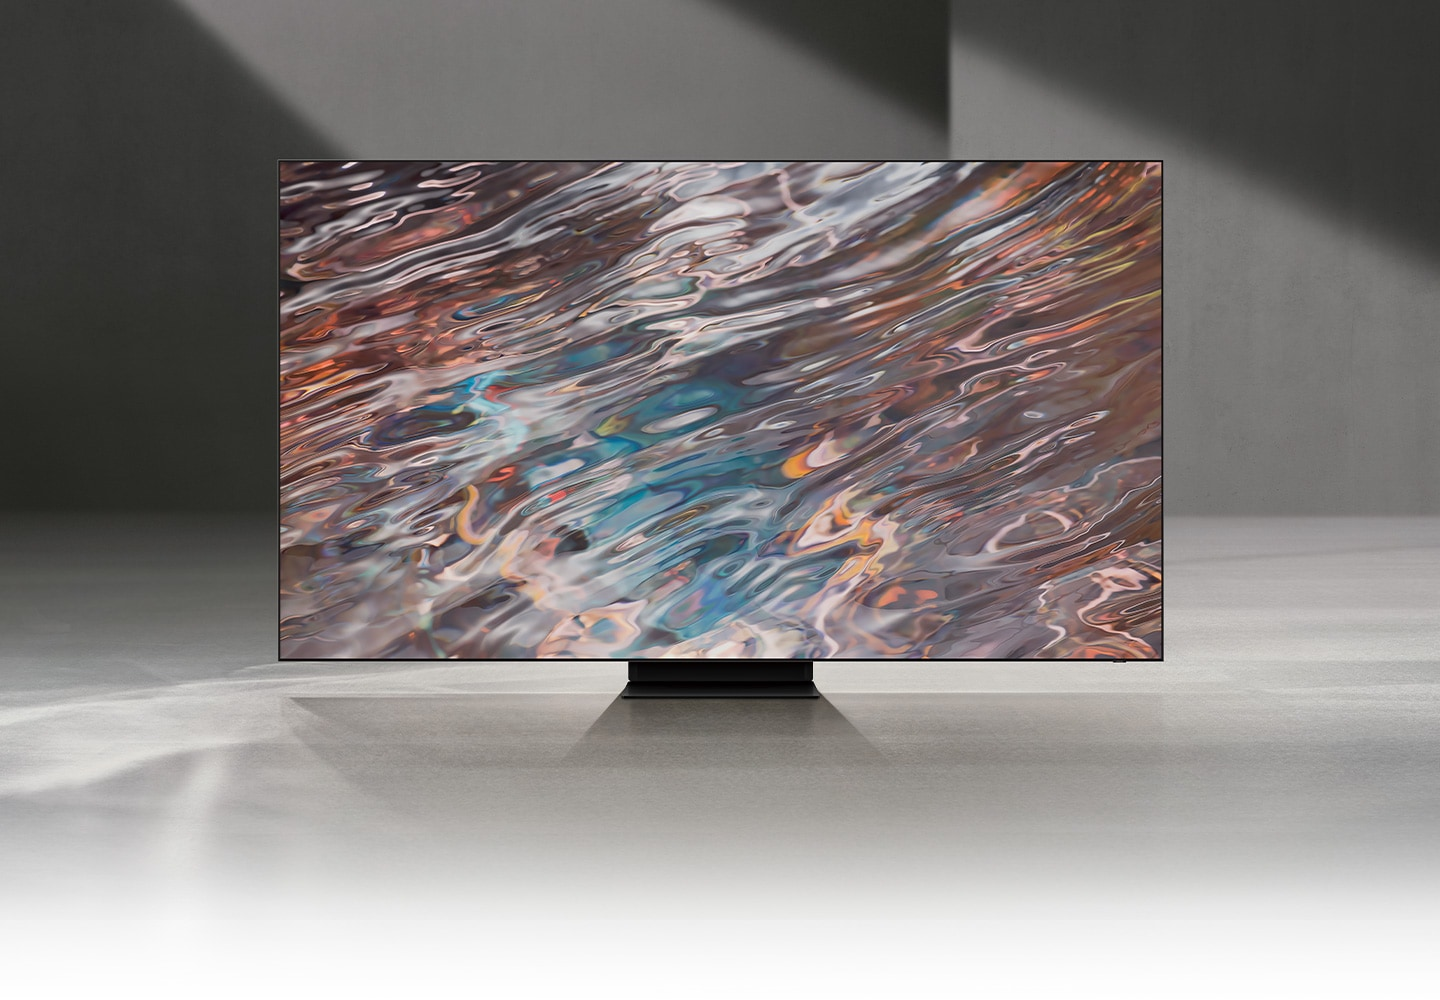 QN800A displays intricately blended color graphics which demonstrate long-lasting colors of Quantum Dot technology.